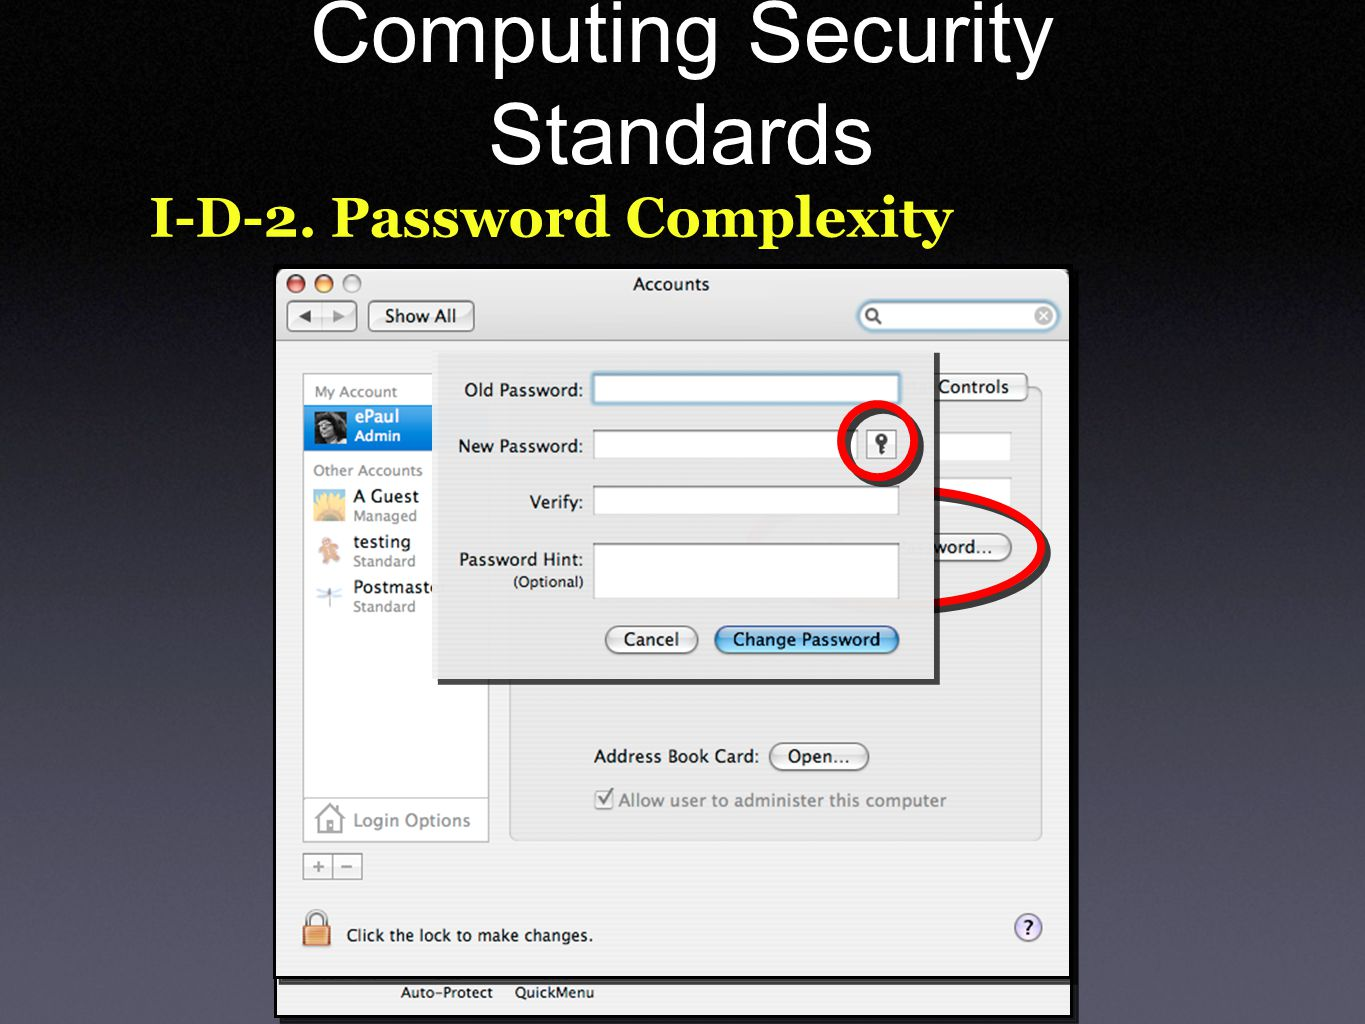 Computing Security Standards I-D-2. Password Complexity